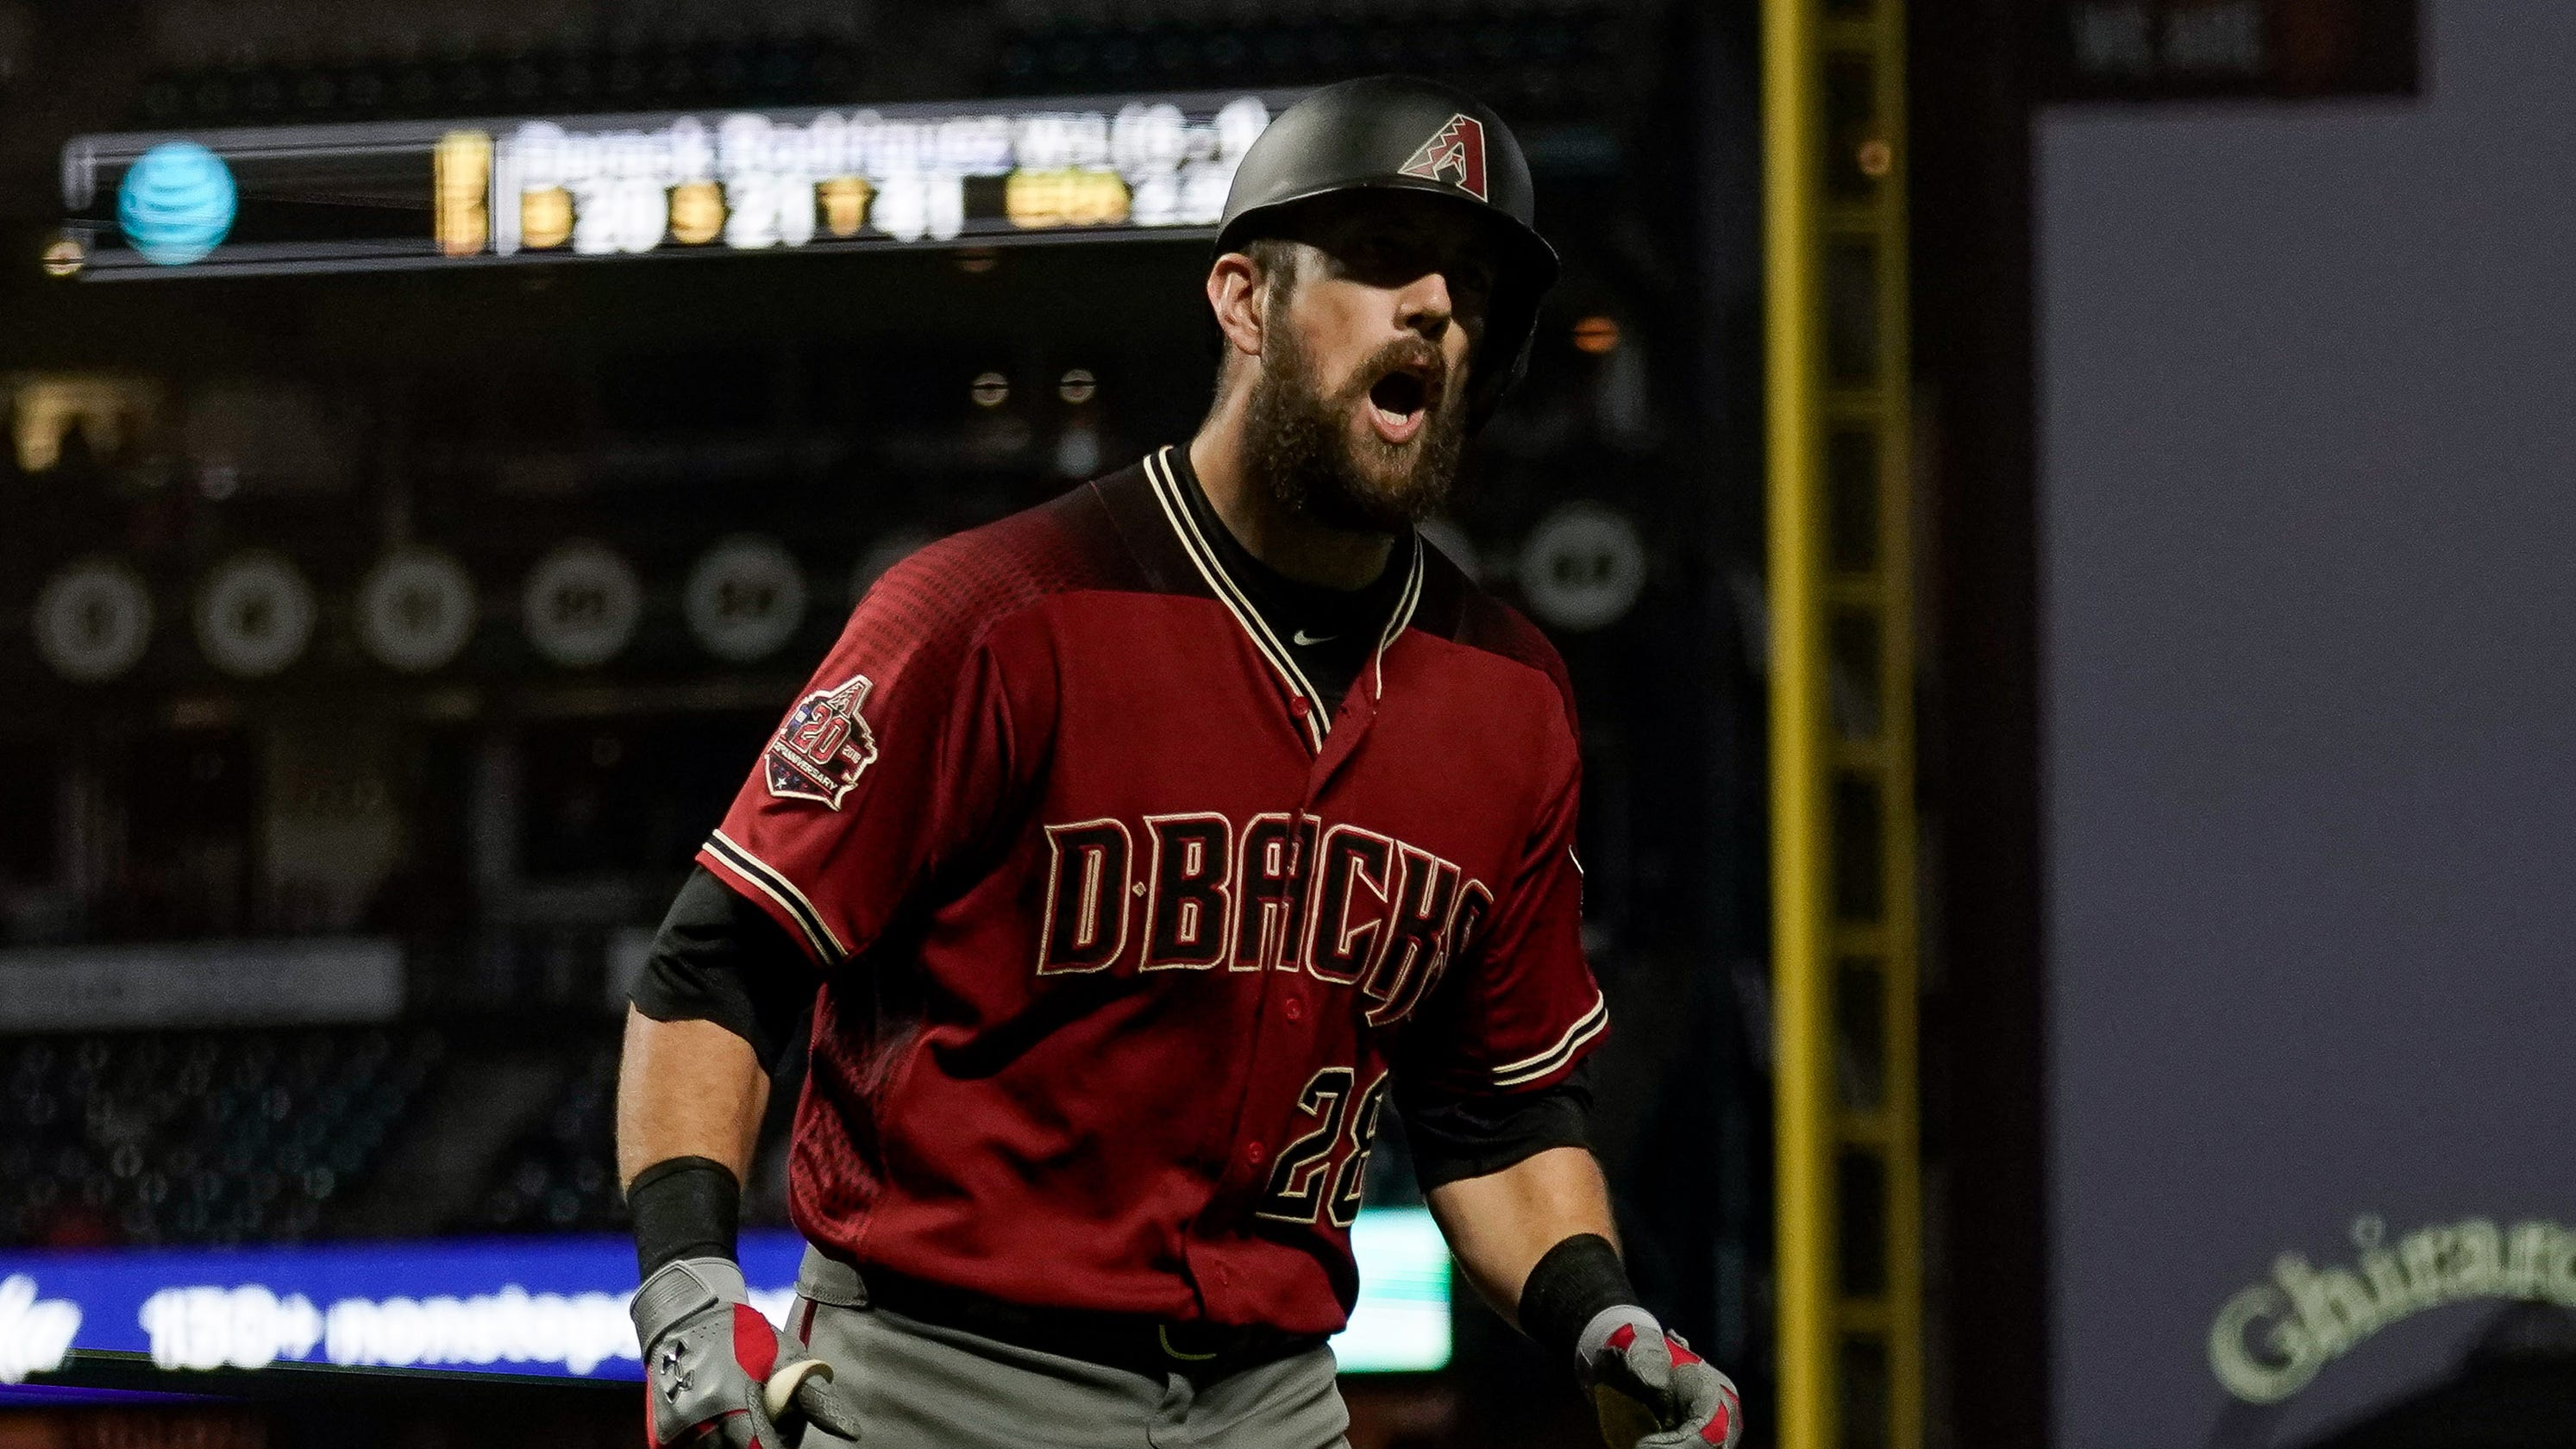 e10920c86 'How is it a rough stretch?' Steven Souza gets irritated after question on  Diamondbacks' offensive struggles